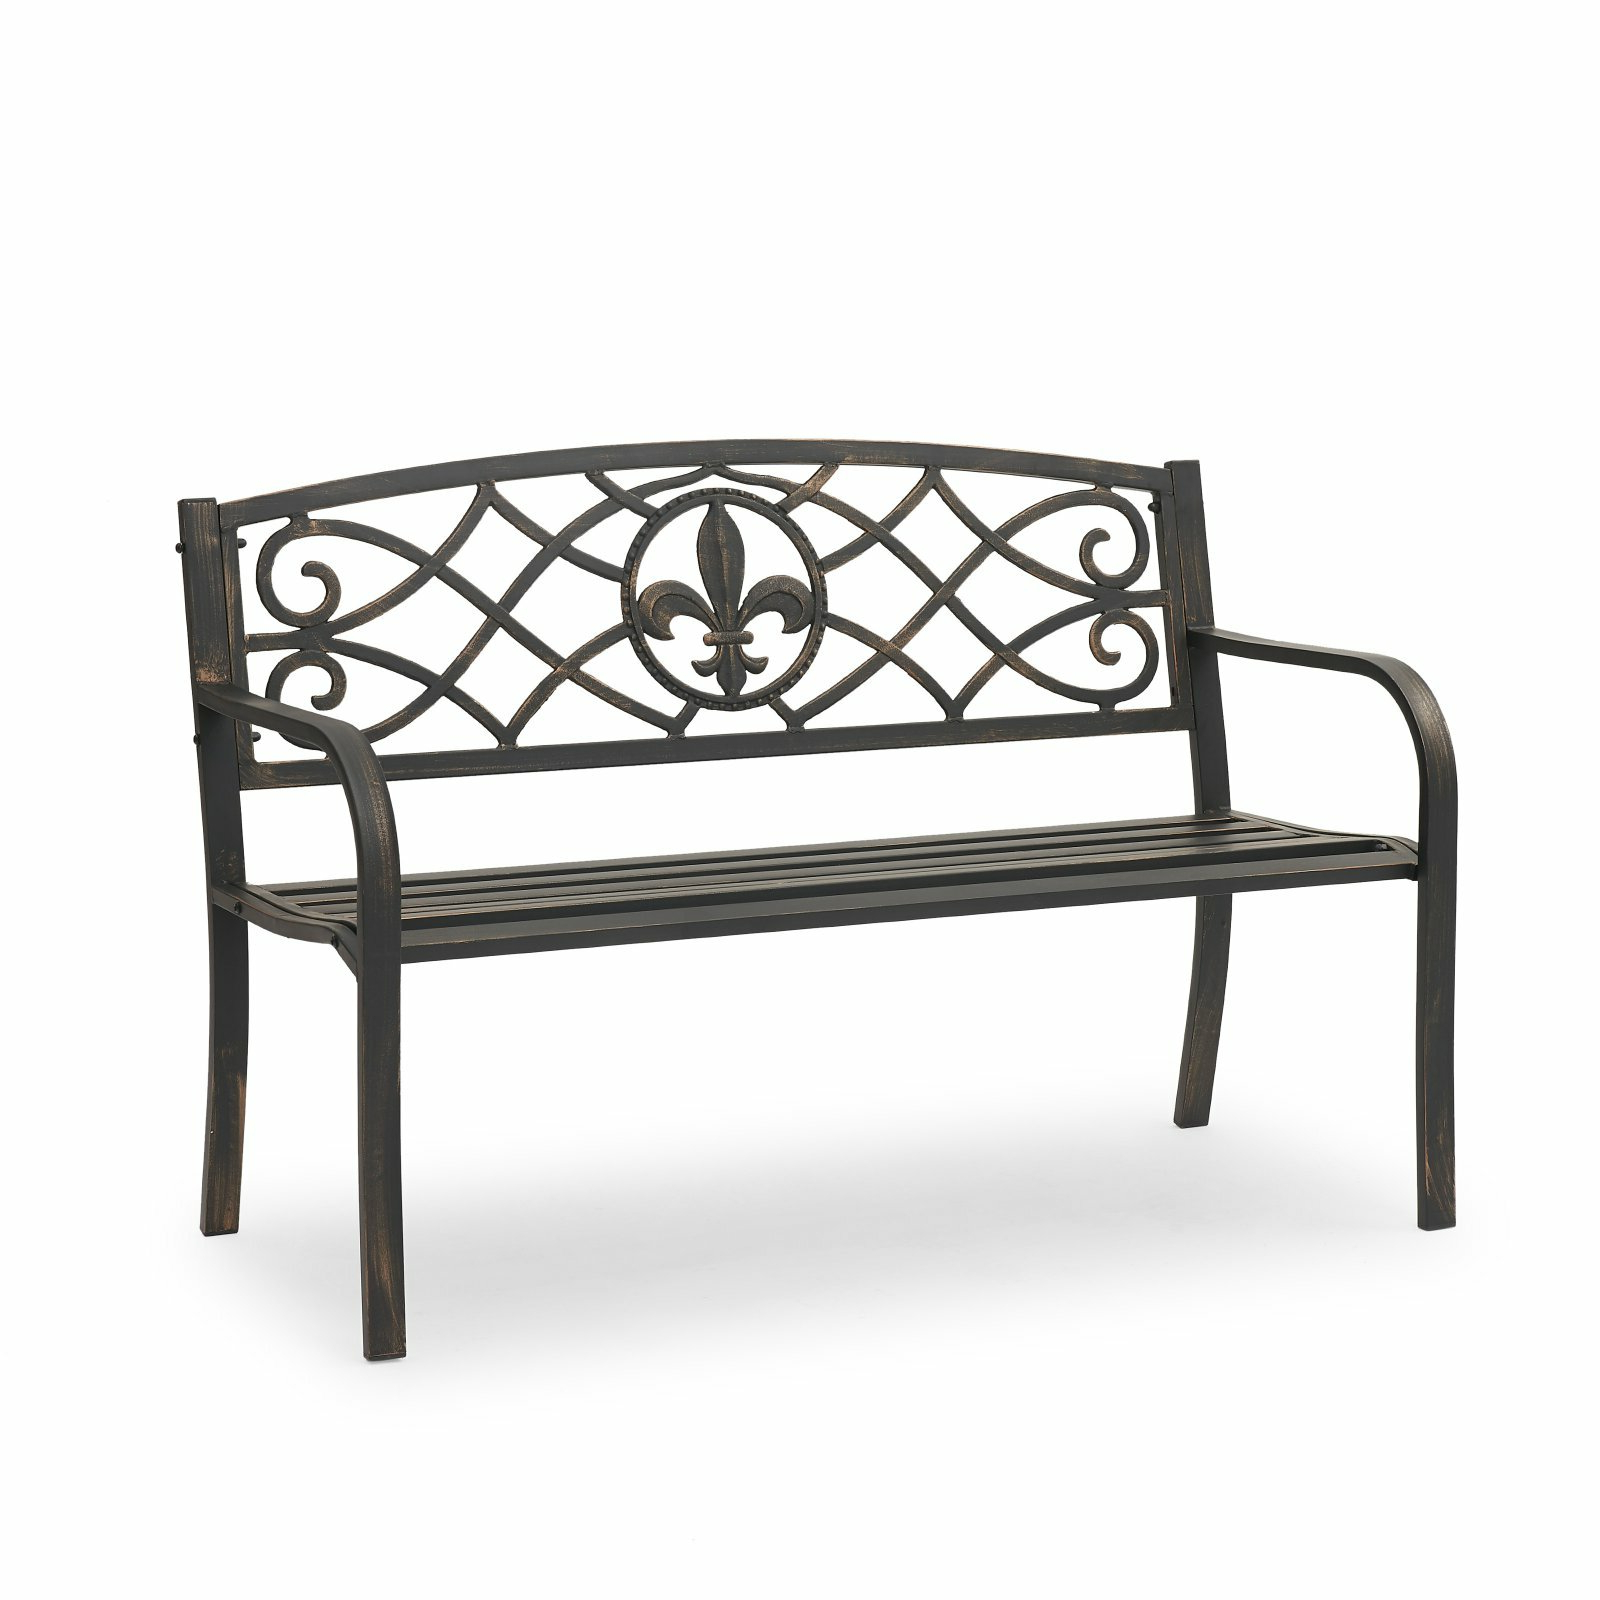 Tattnall Royal Curved Metal Park Bench Regarding Most Up To Date Zev Blue Fish Metal Garden Benches (View 6 of 30)